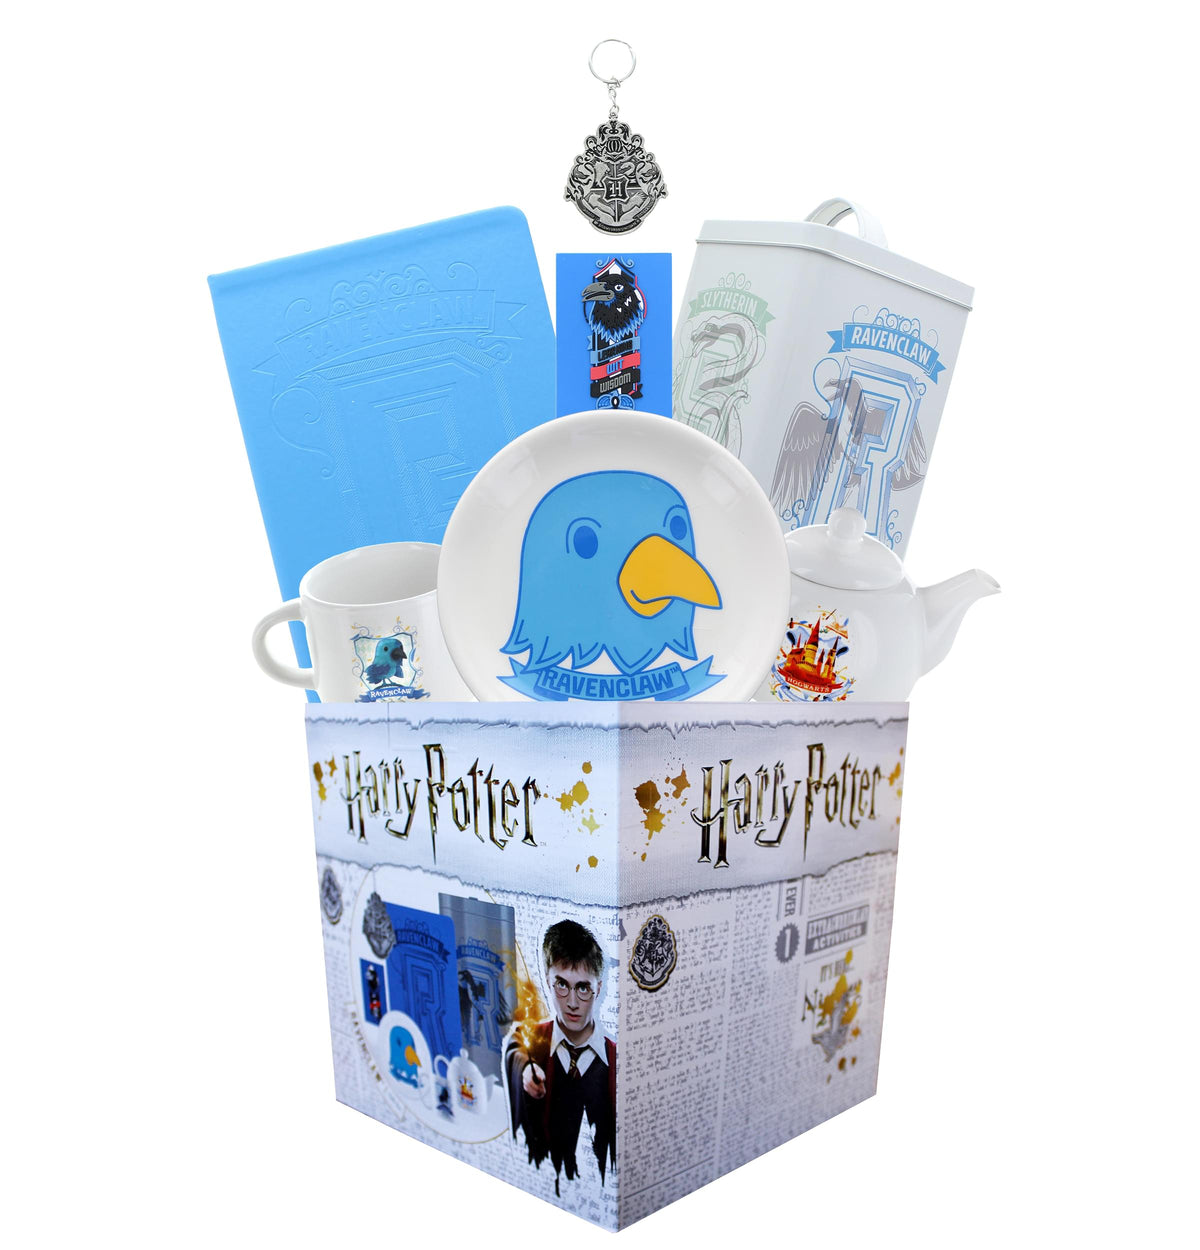 Harry Potter Ravenclaw House LookSee Box | Contains 7 Harry Potter Themed Gifts